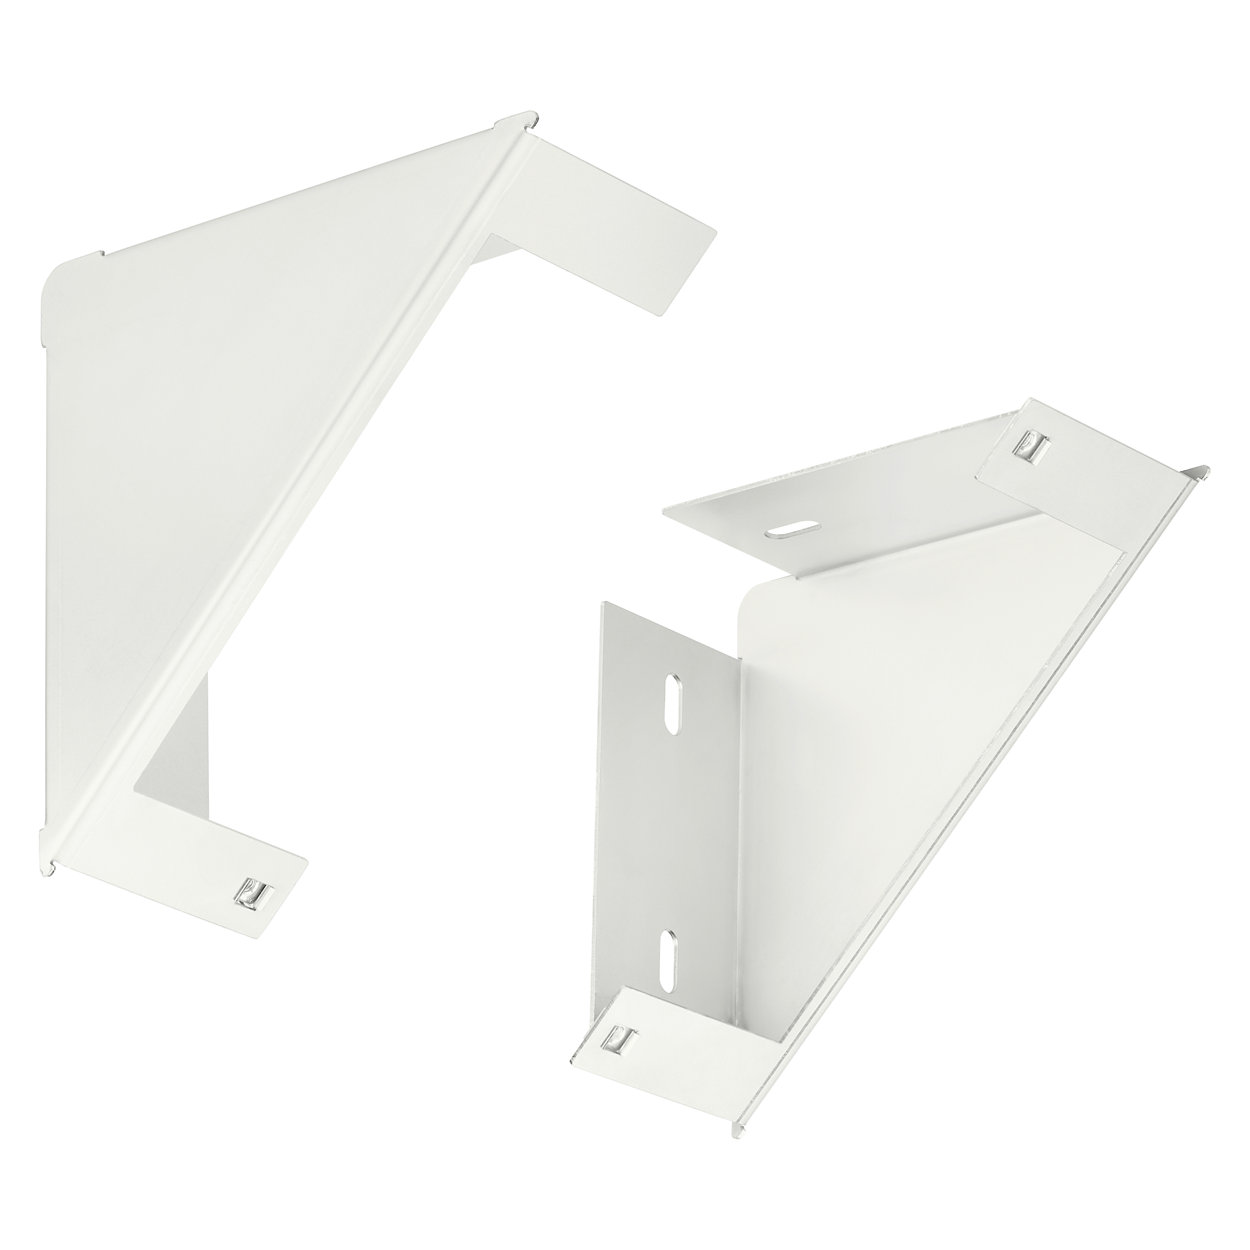 Flow LED – robust and streamlined